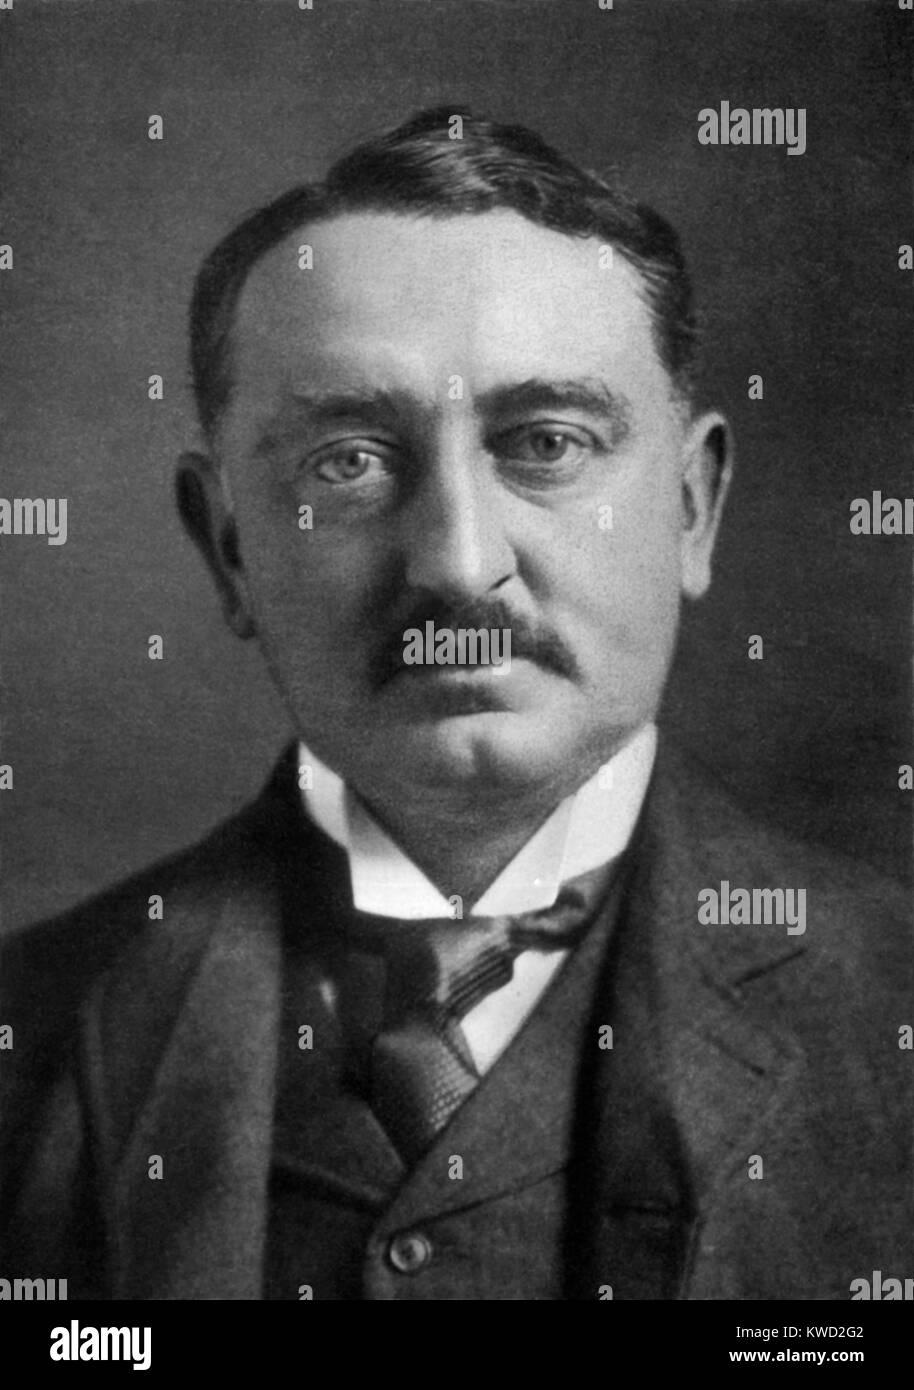 Cecil Rhodes, c. 1890, advanced the British colonial interests in South Africa. He leveraged the fortune made in - Stock Image